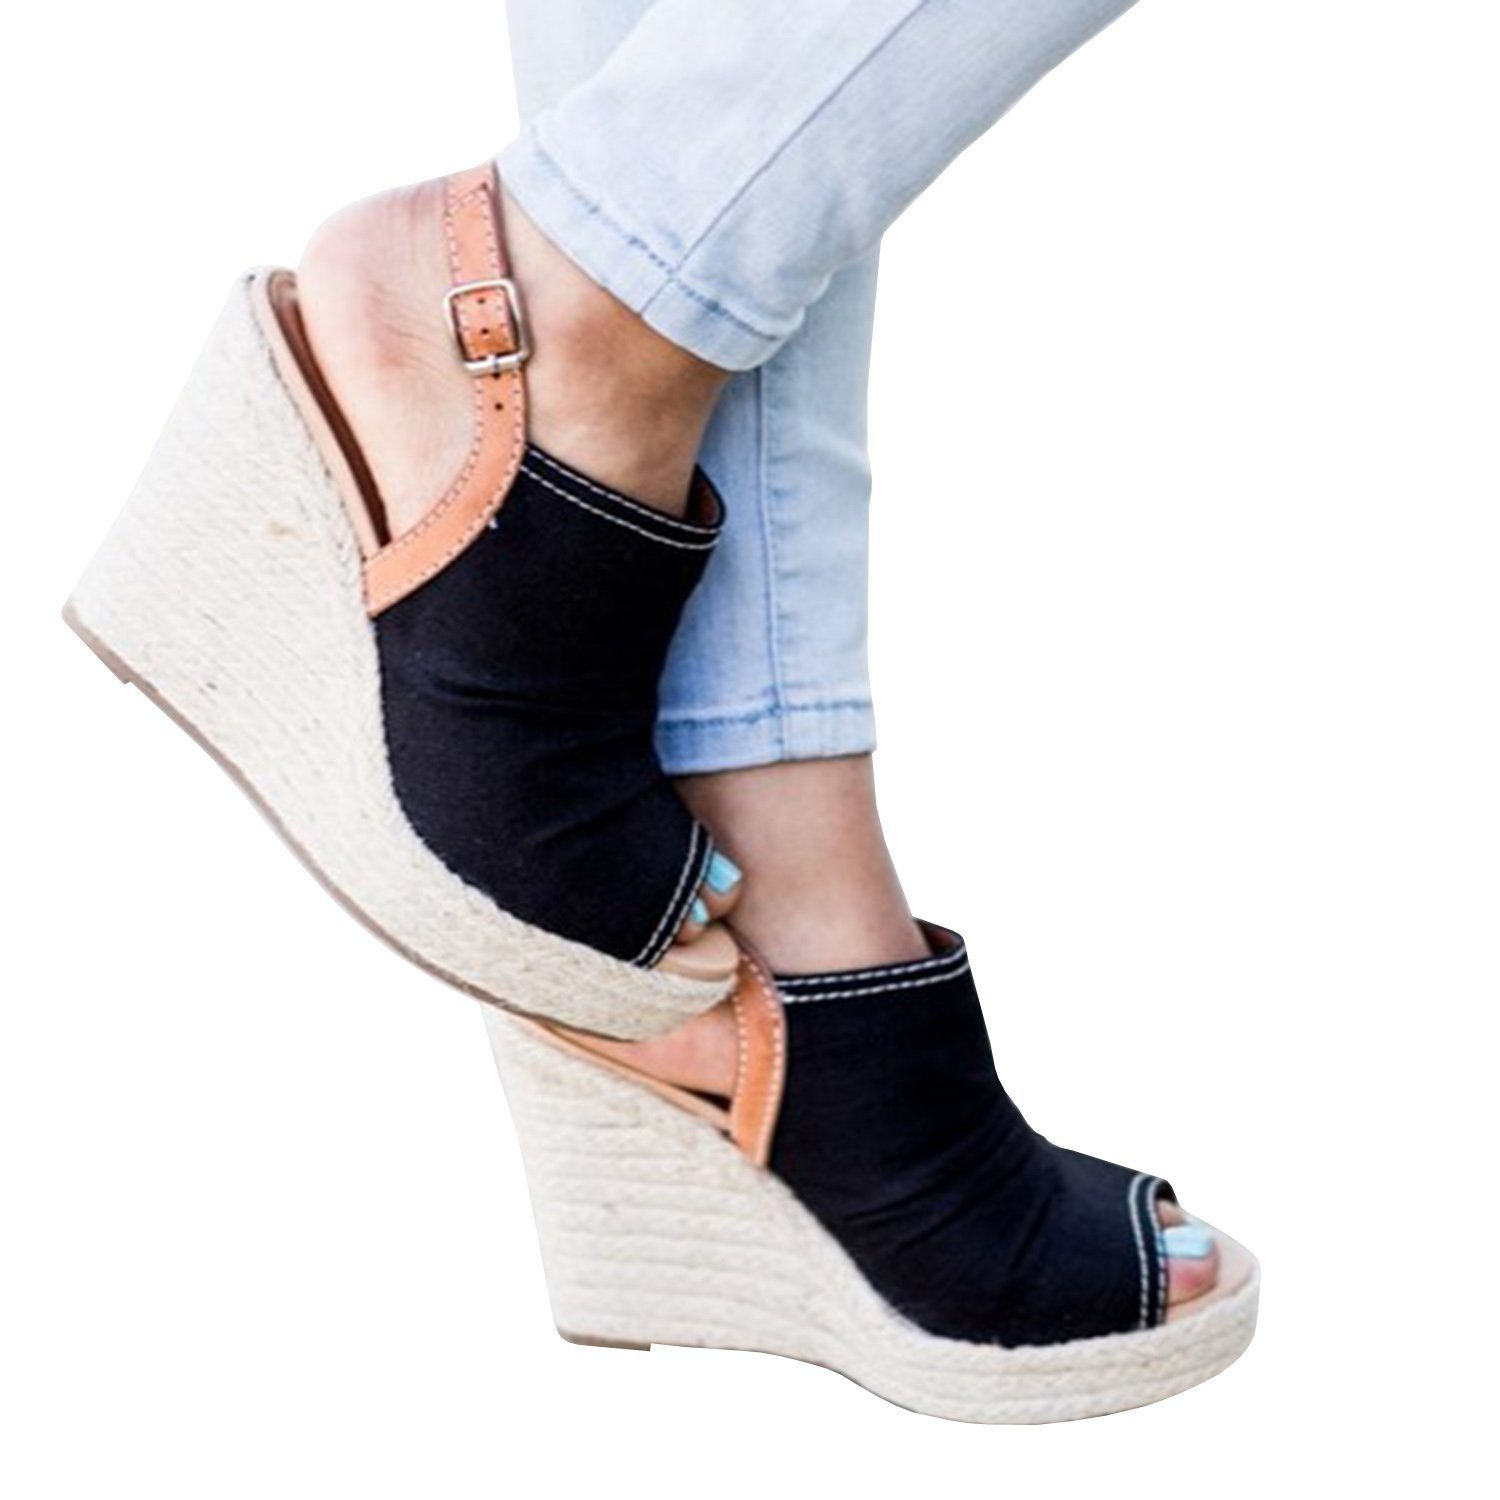 1fe78efc50 Get Quotations · Enjoybuy Womens Espadrille Peep Toe Wedges Ankle Strap  Platform Sandals With Ruched Canvas Upper